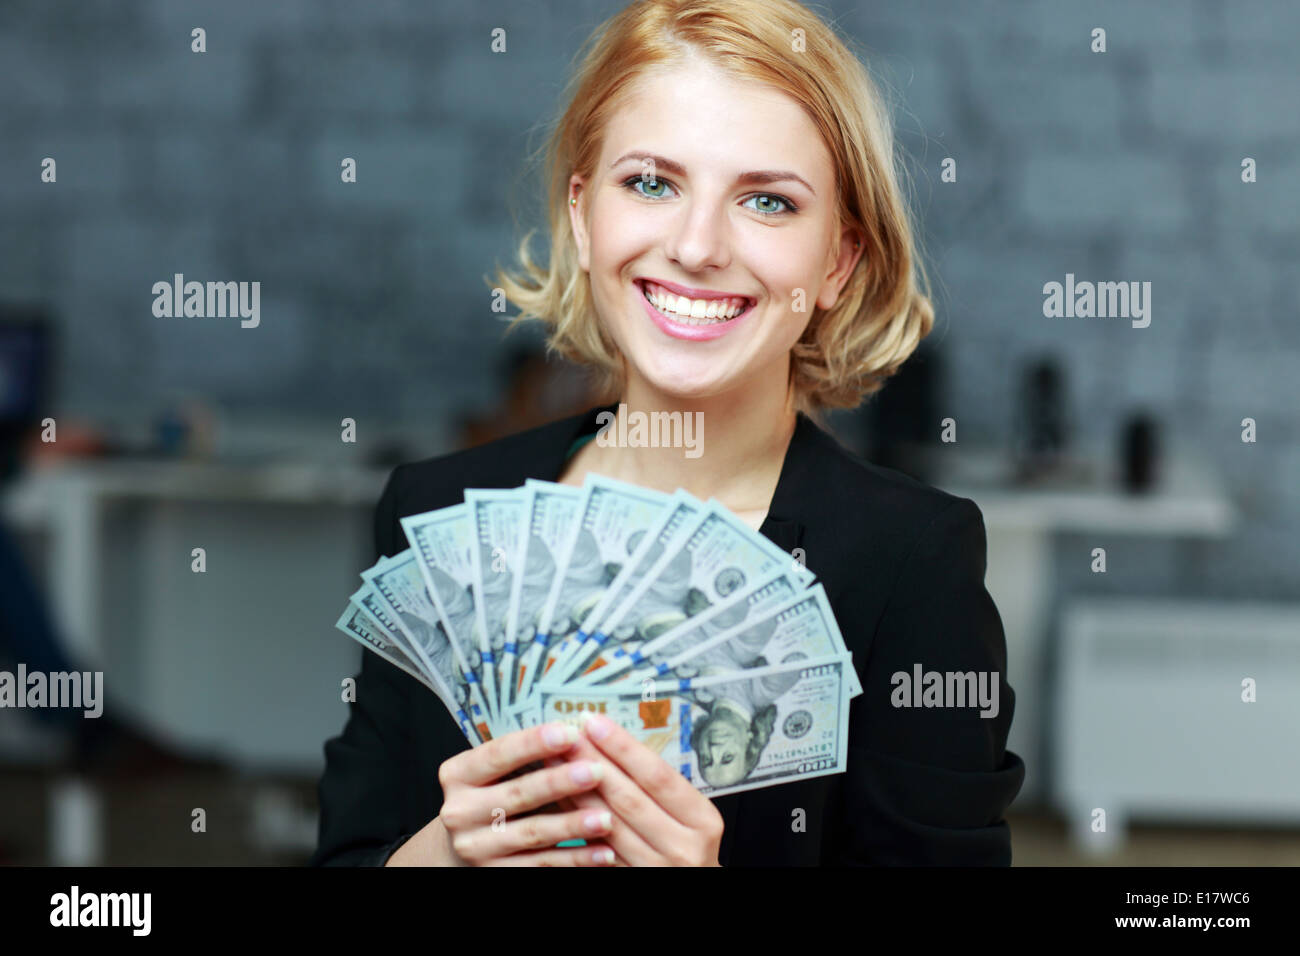 Happy smiling businesswoman holding bills of dollars in office - Stock Image